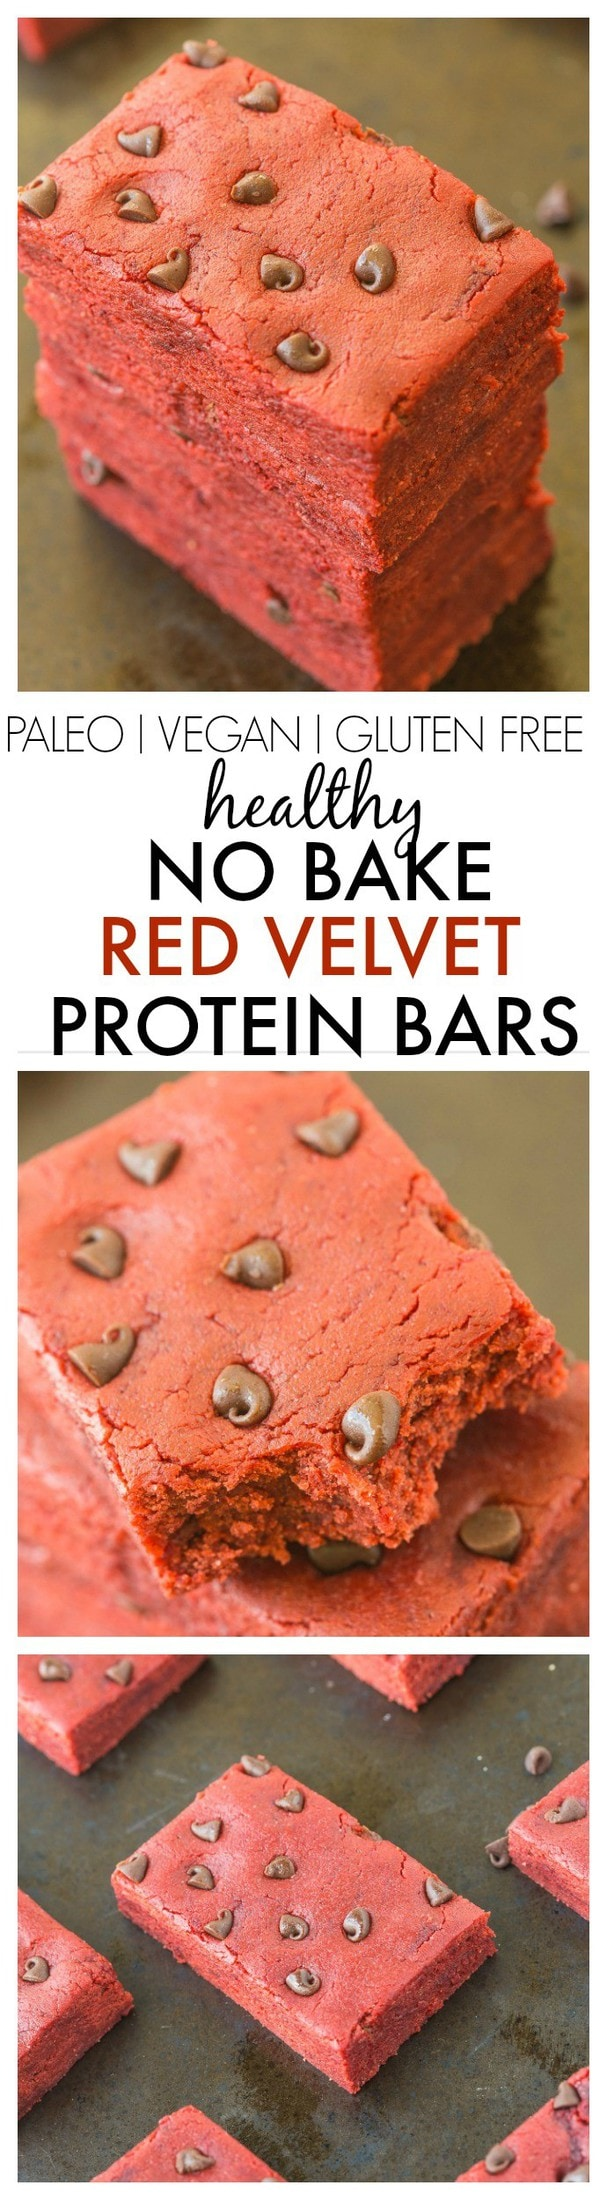 Healthy No Bake Red Velvet Protein Bars- 10 minutes and 1 bowl to make these extra chewy, soft and delicious snack bars- No added sugar too! {vegan, gluten free, paleo, sugar free recipe}- thebigmansworld.com